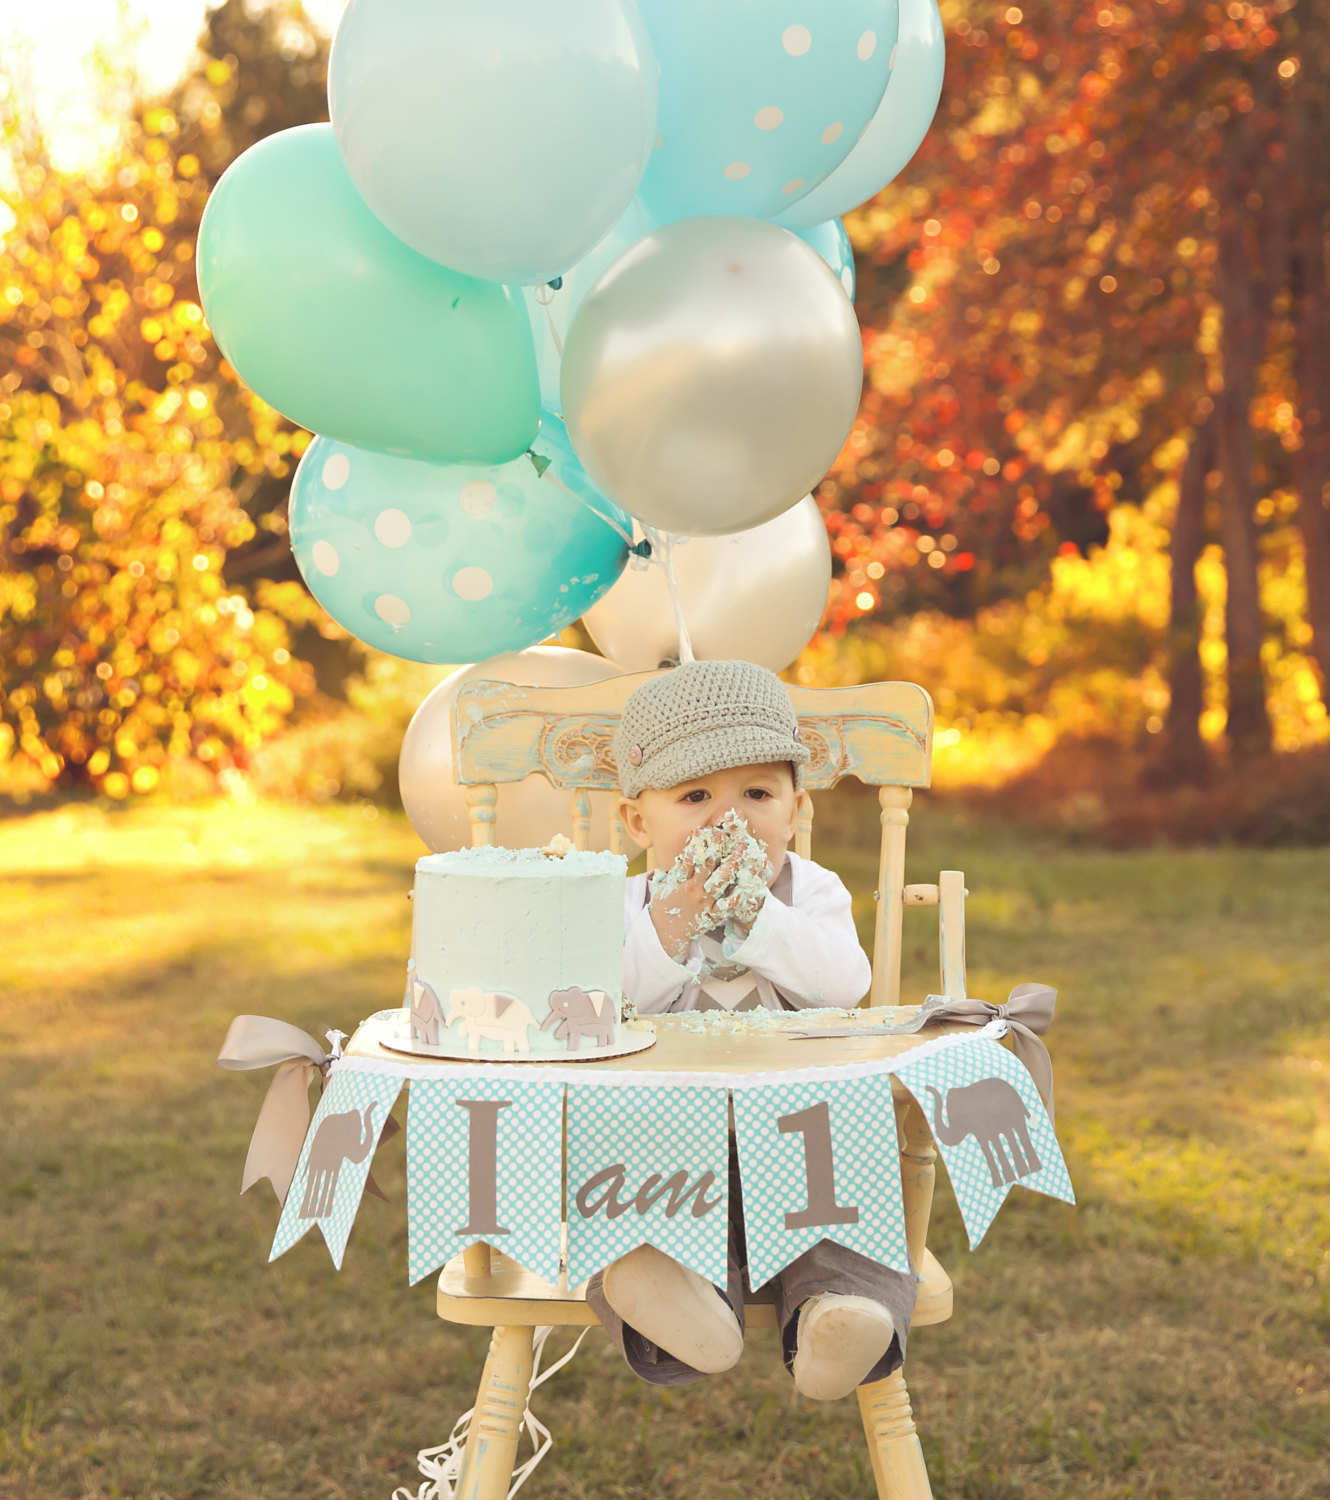 Best ideas about Birthday Party Ideas For Boys . Save or Pin First Birthday The time to celebrate is here Now.